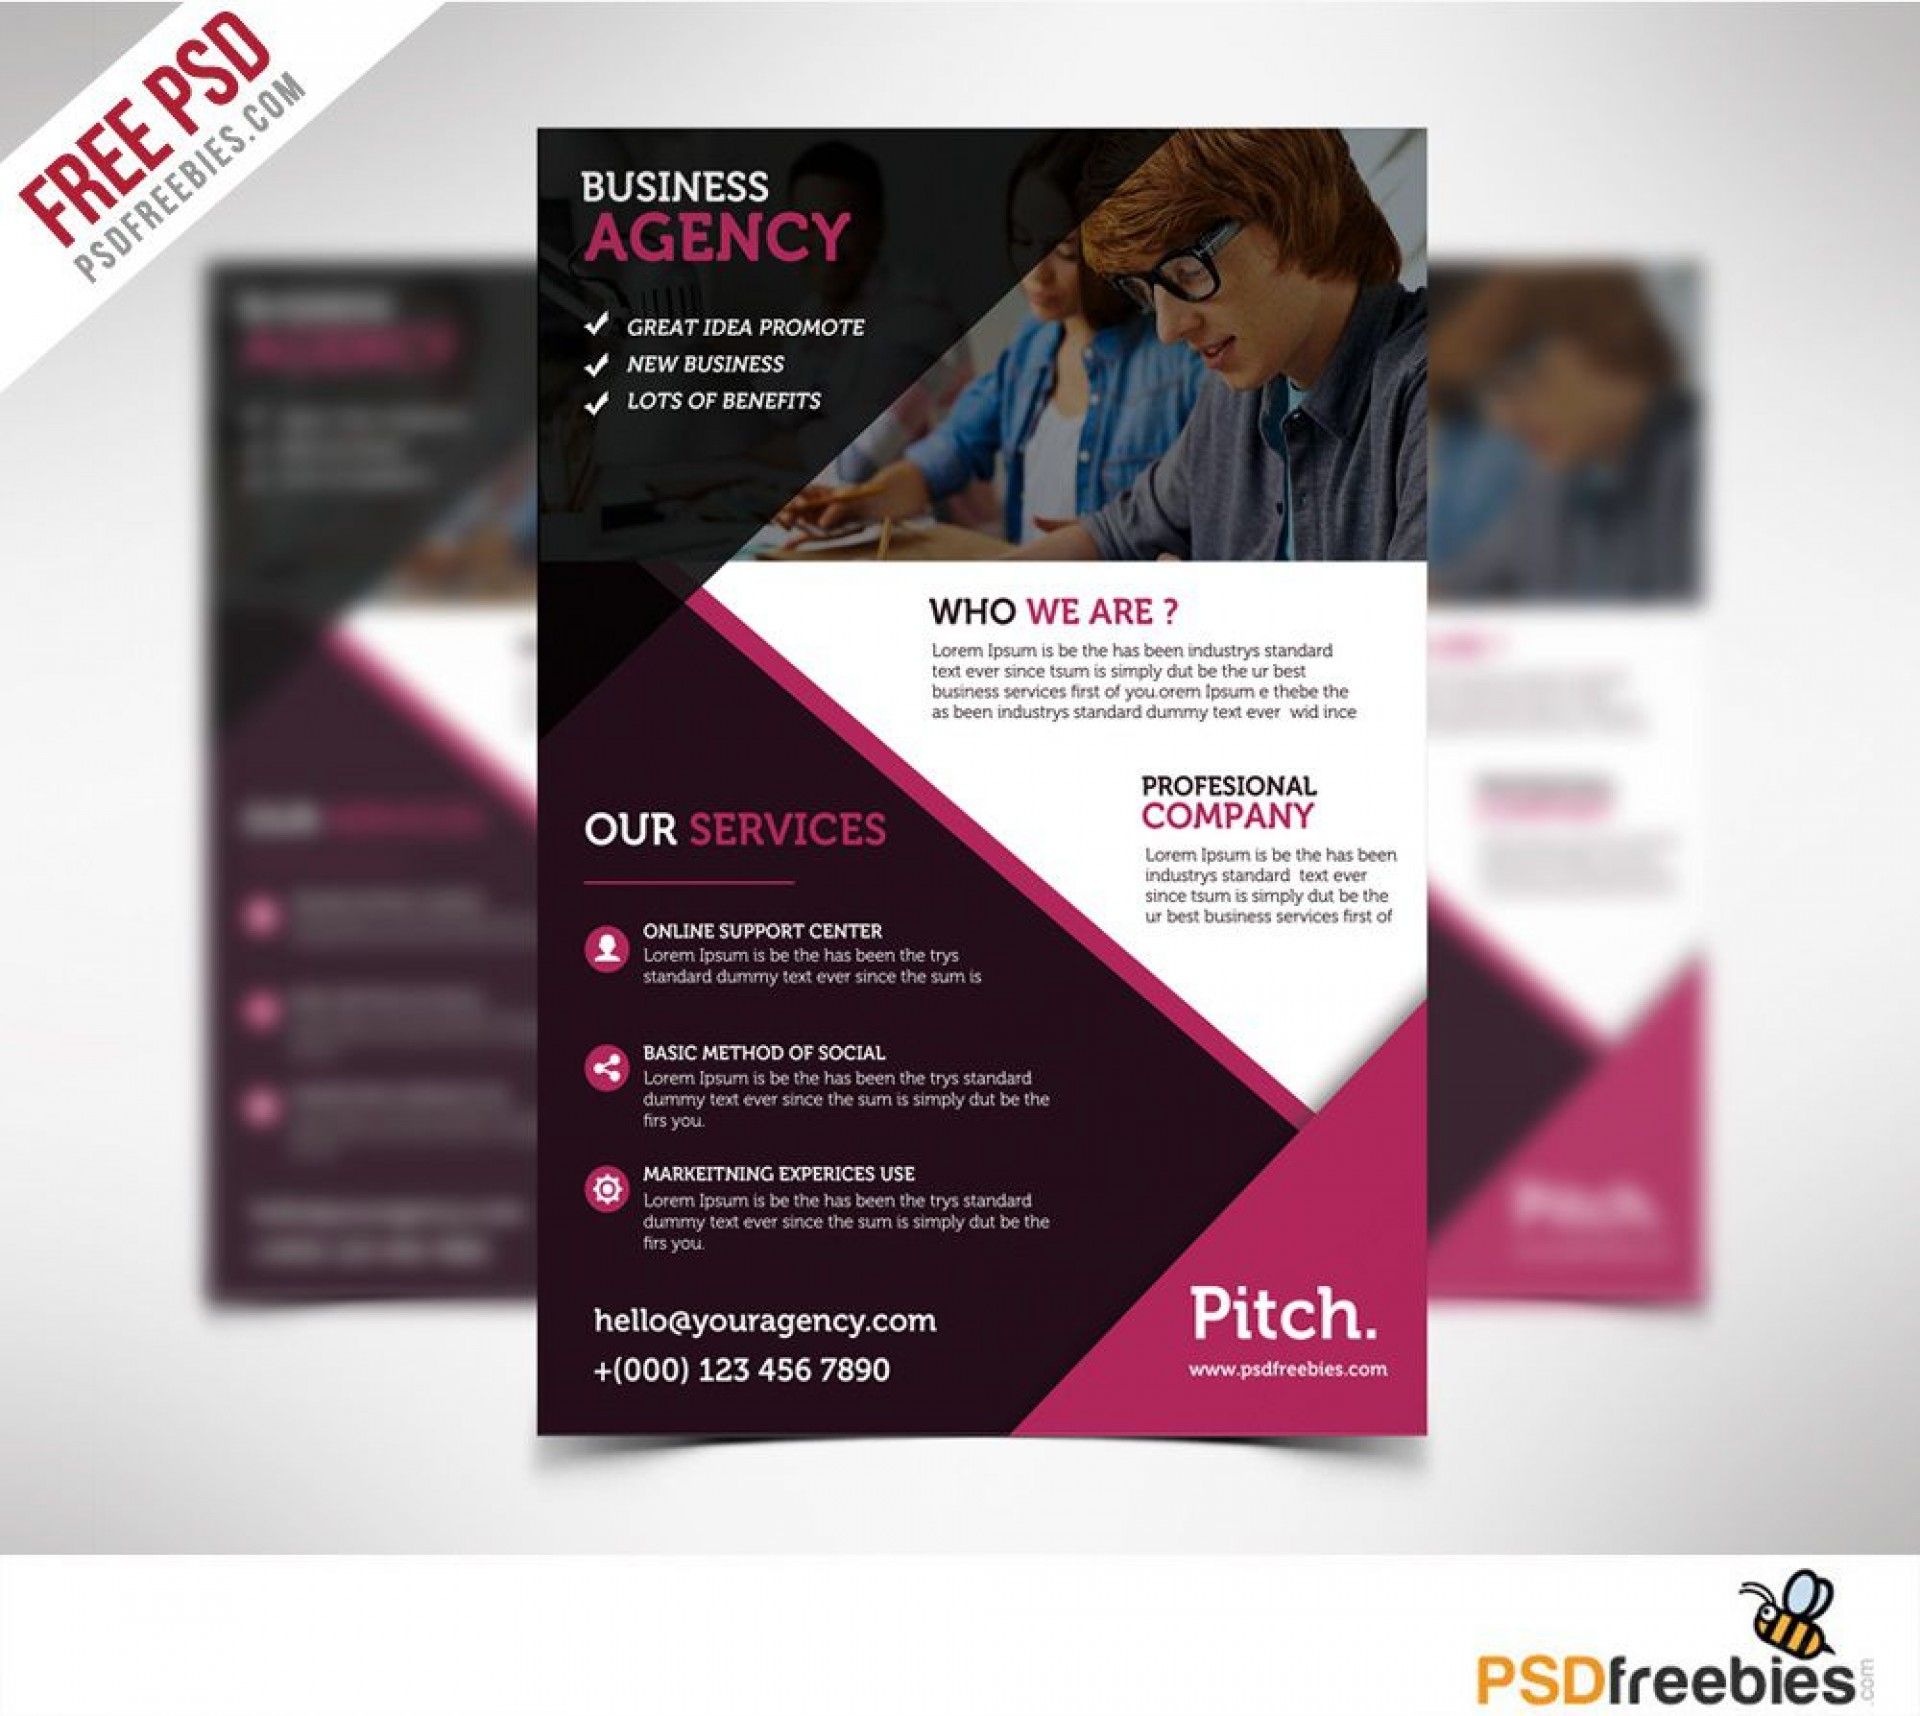 004 Wondrou Busines Flyer Template Psd Free Download Concept 1920